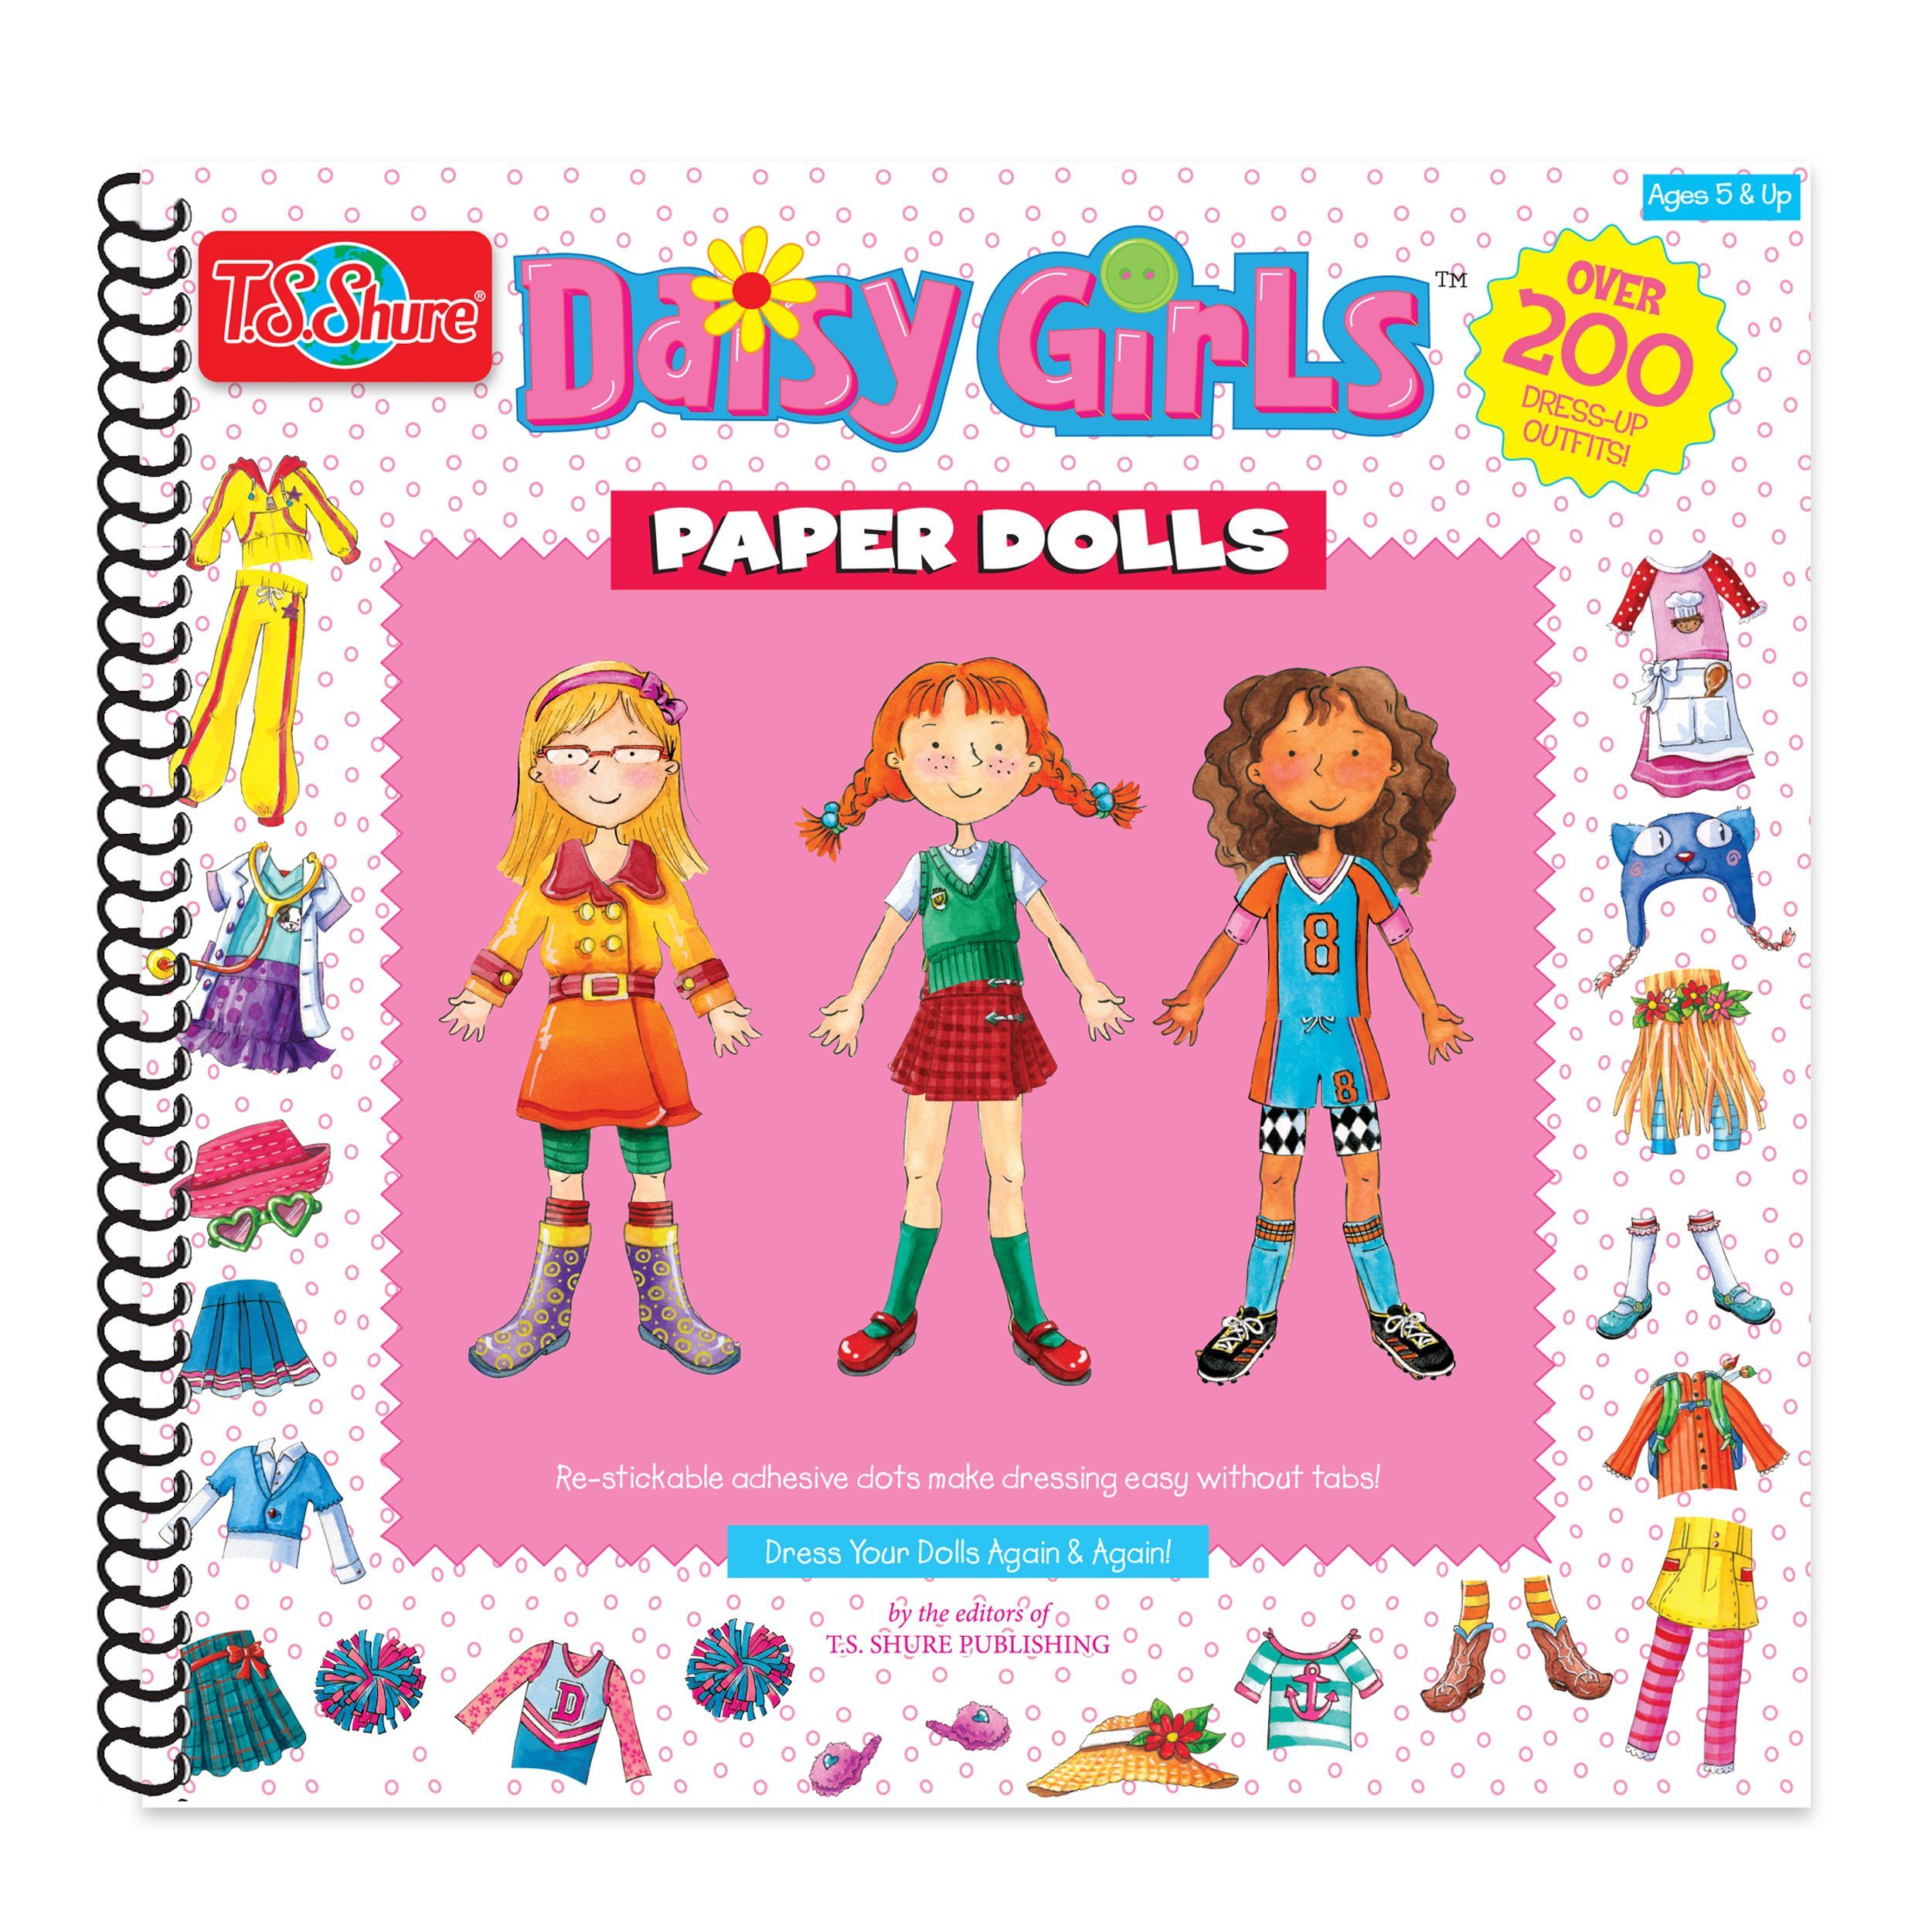 T.S. Shure Daisy Girls Paper Dolls Activity Book by T.S. Shure